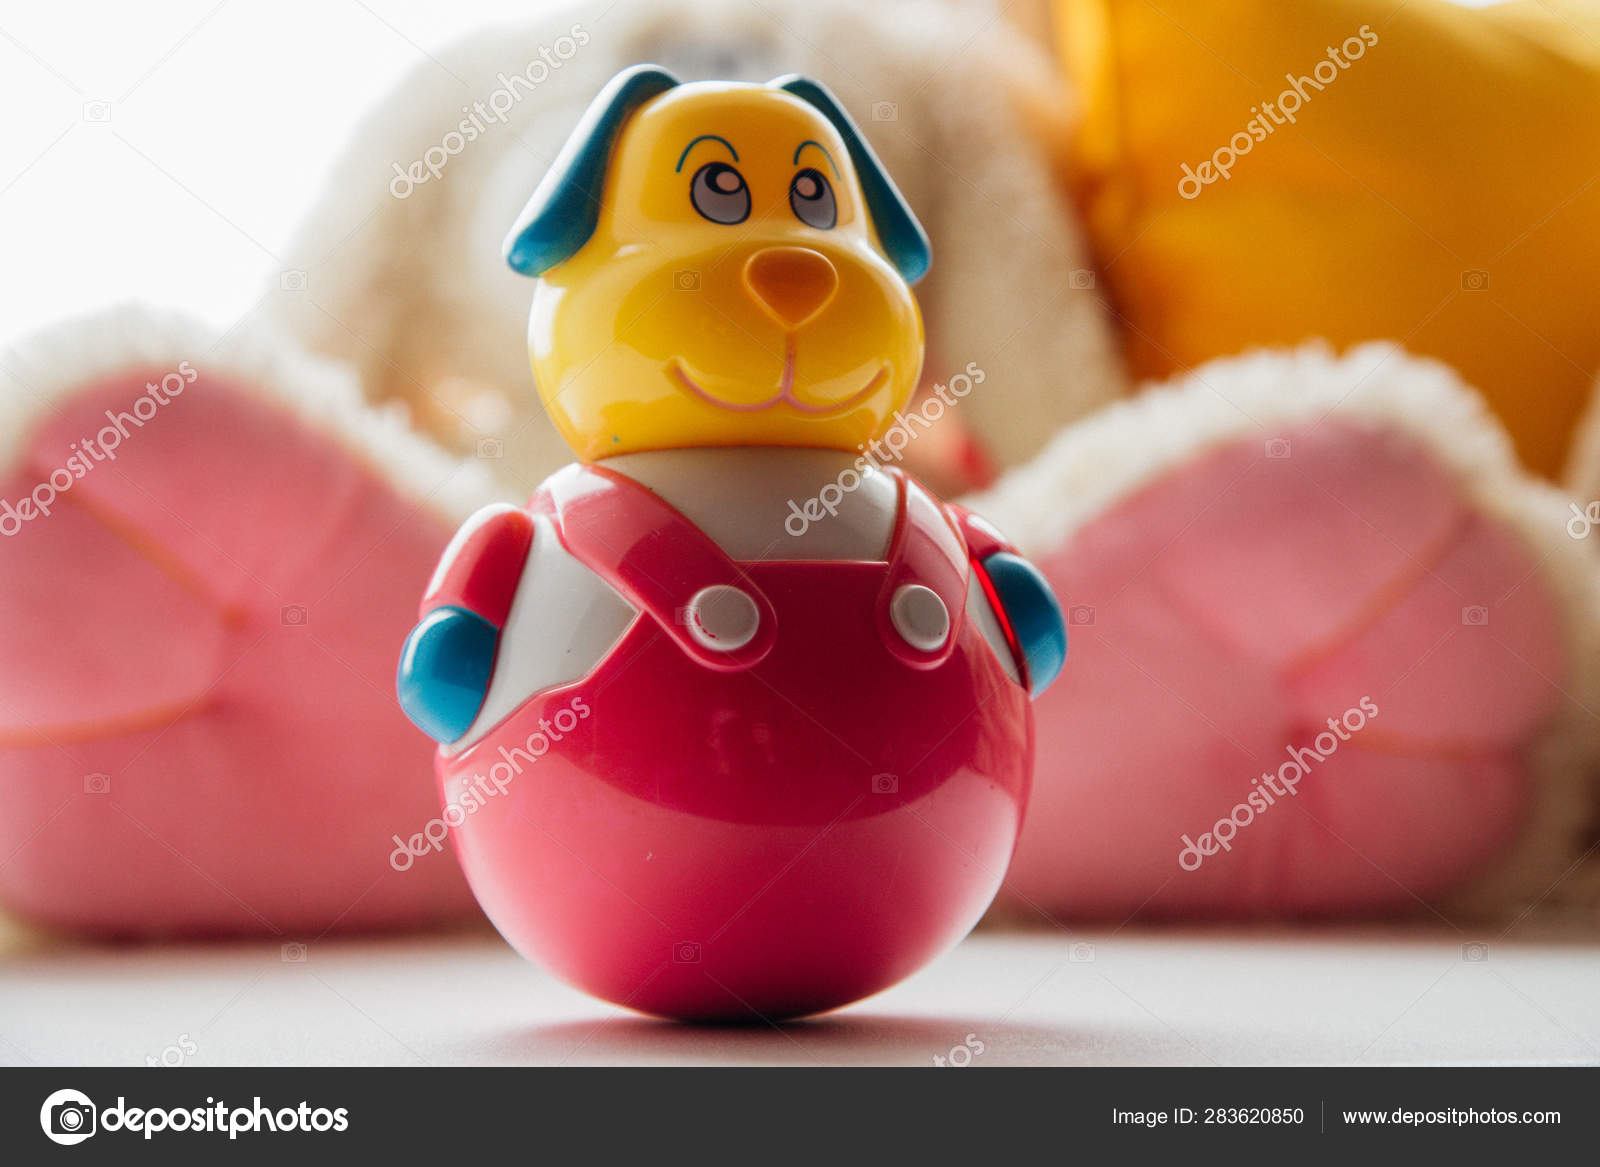 Old Vintage Children S Toys Roly Poly A Child S Toy Dog Subject From The Past Stock Photo Image By Annu1tochka 283620850